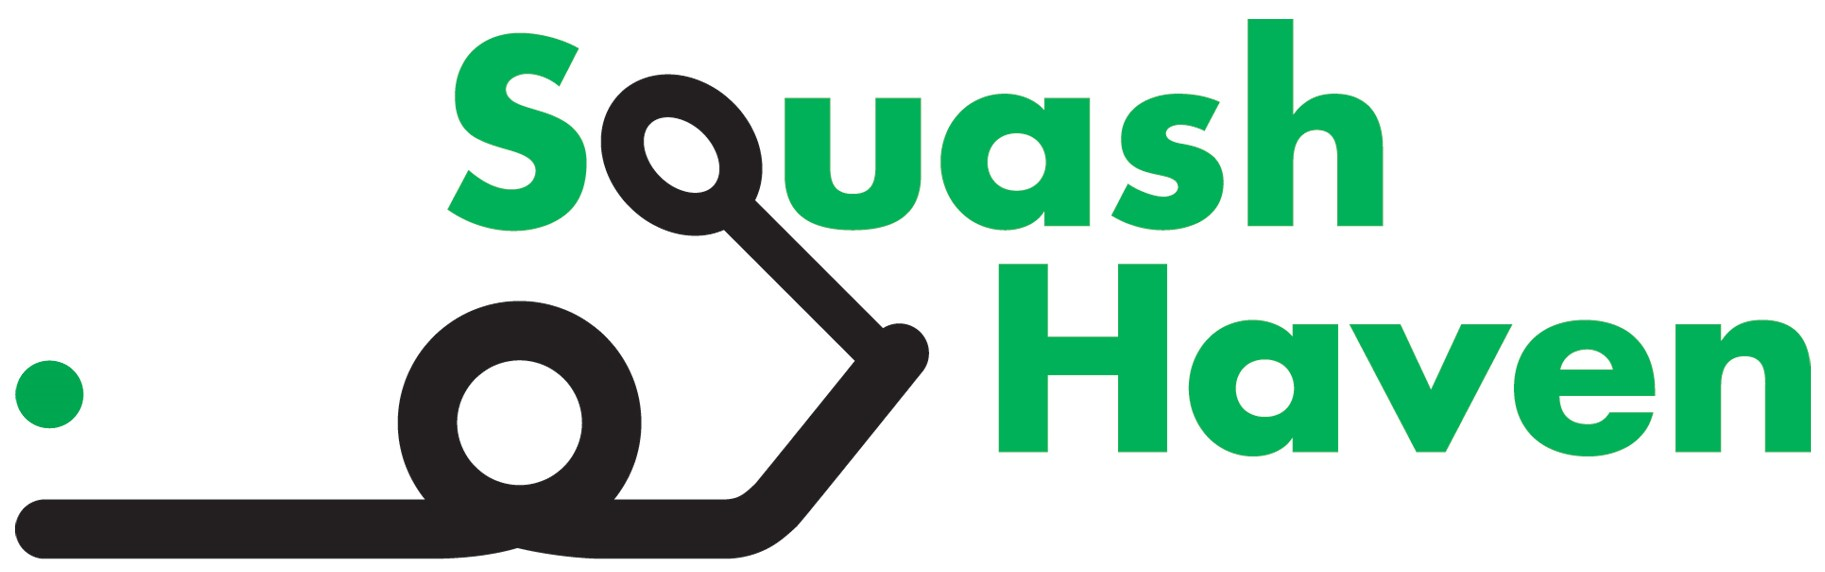 squash_haven_logo_green_pms354-1_2_-1425390188.jpeg